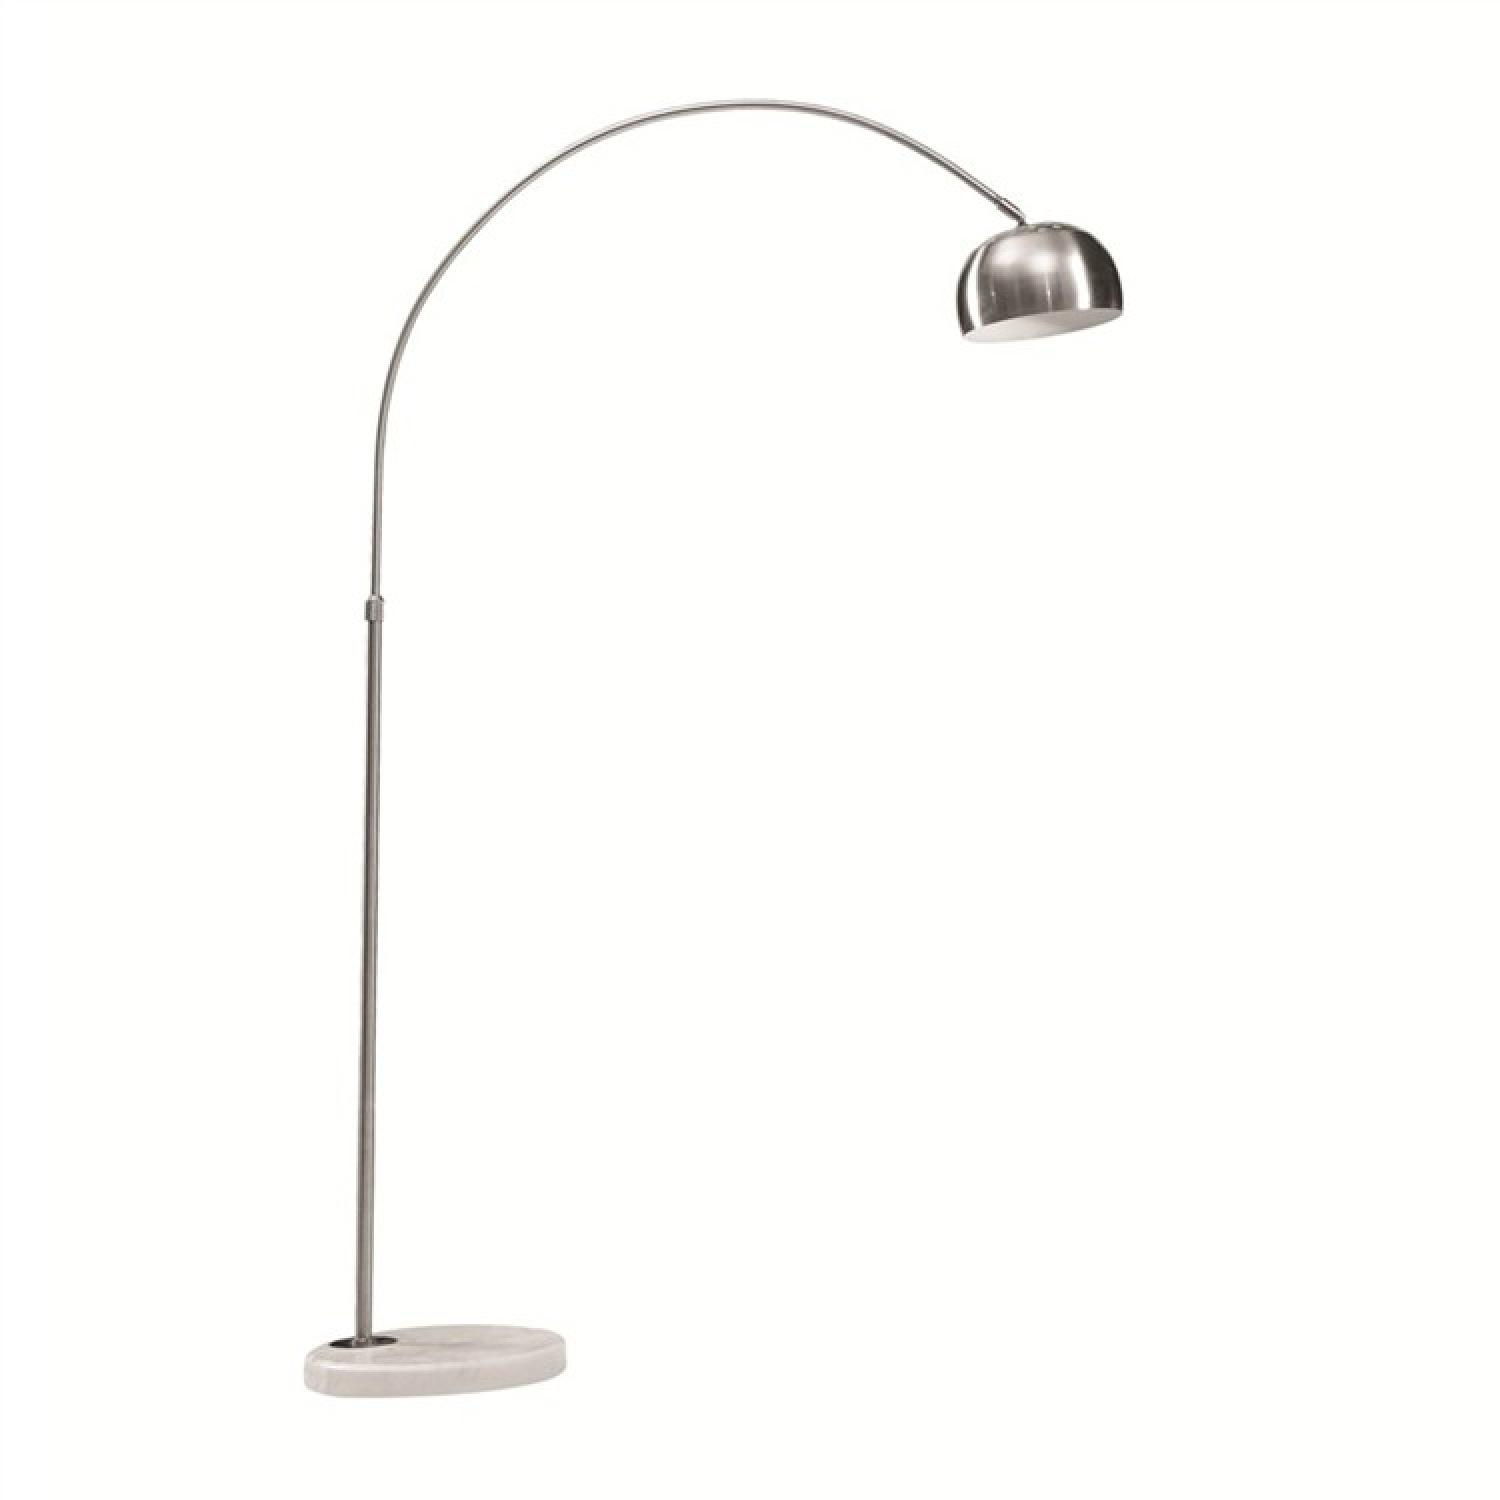 Modern Arch Lamp w/ Polished Stainless Steel Body & Round White Marble Base - image-1